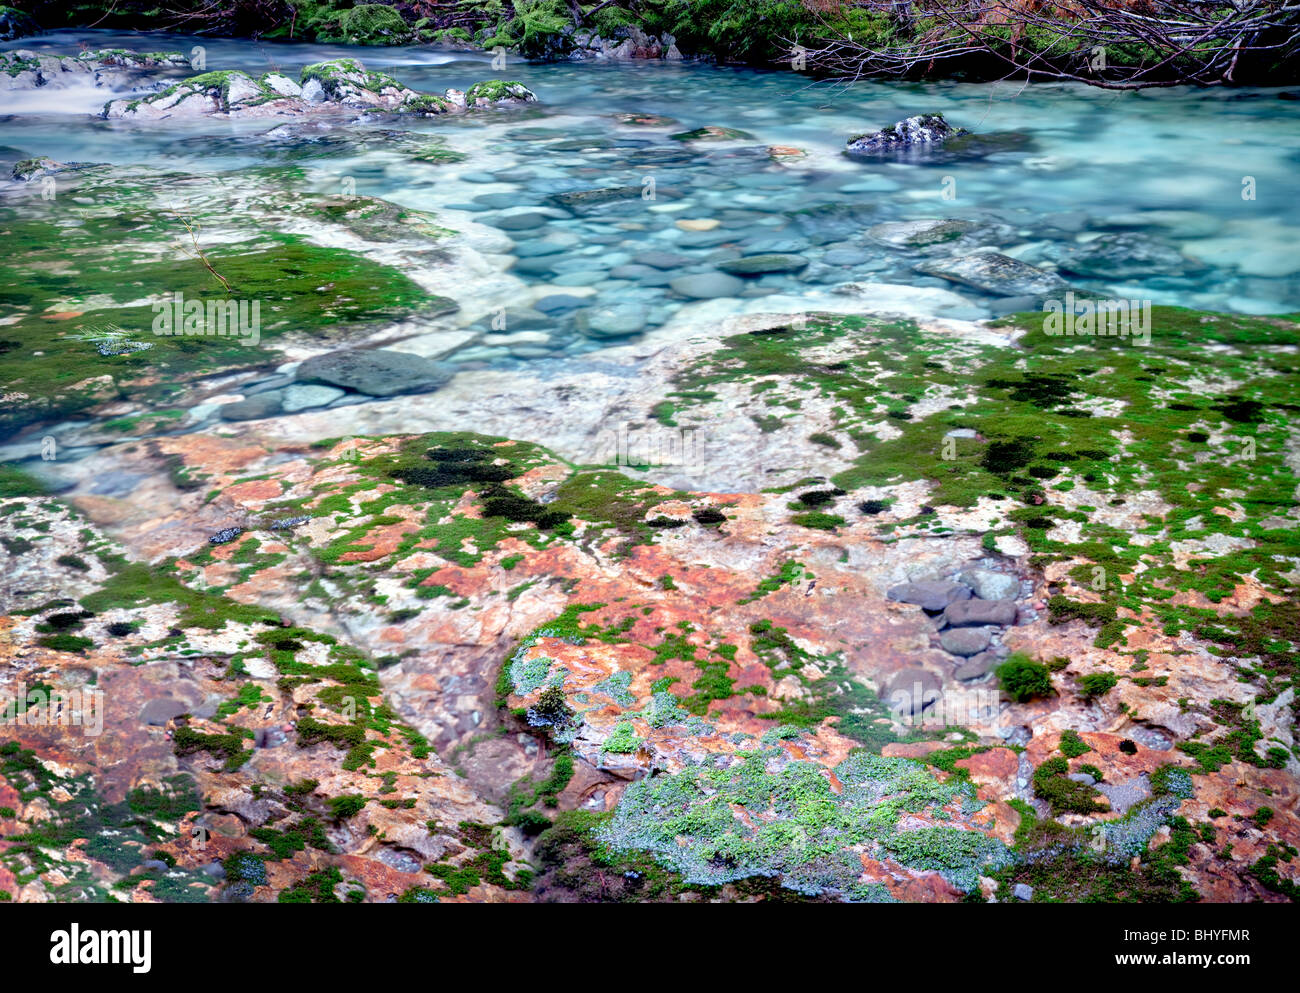 Little North Santiam River with colorful rocks and pools. Opal Creek Scenic Recreation Area, Oregon - Stock Image